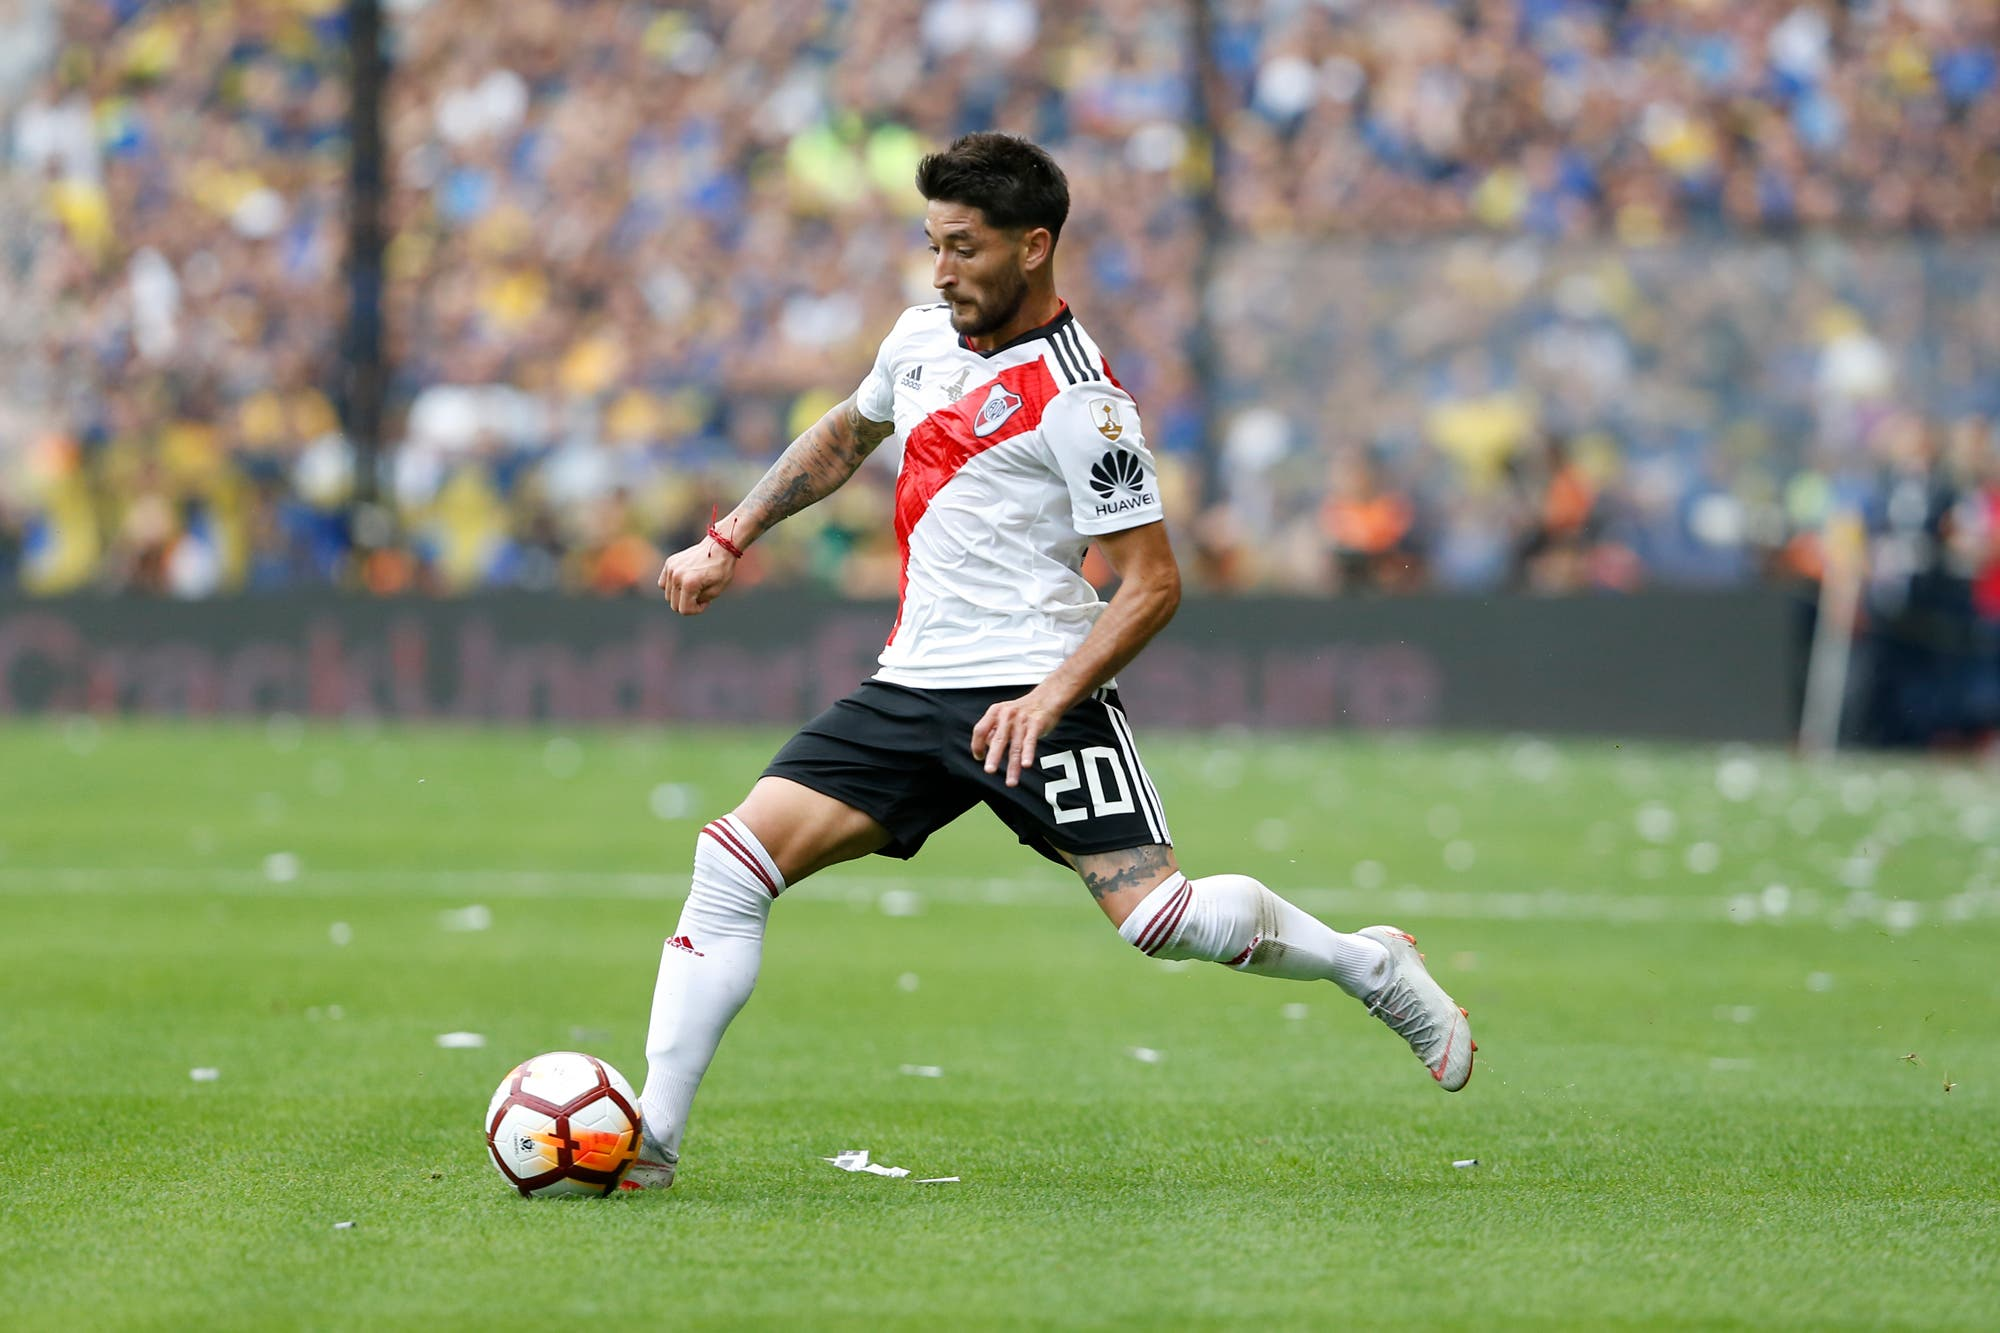 Banfield-River, Superliga: horario, TV y formaciones